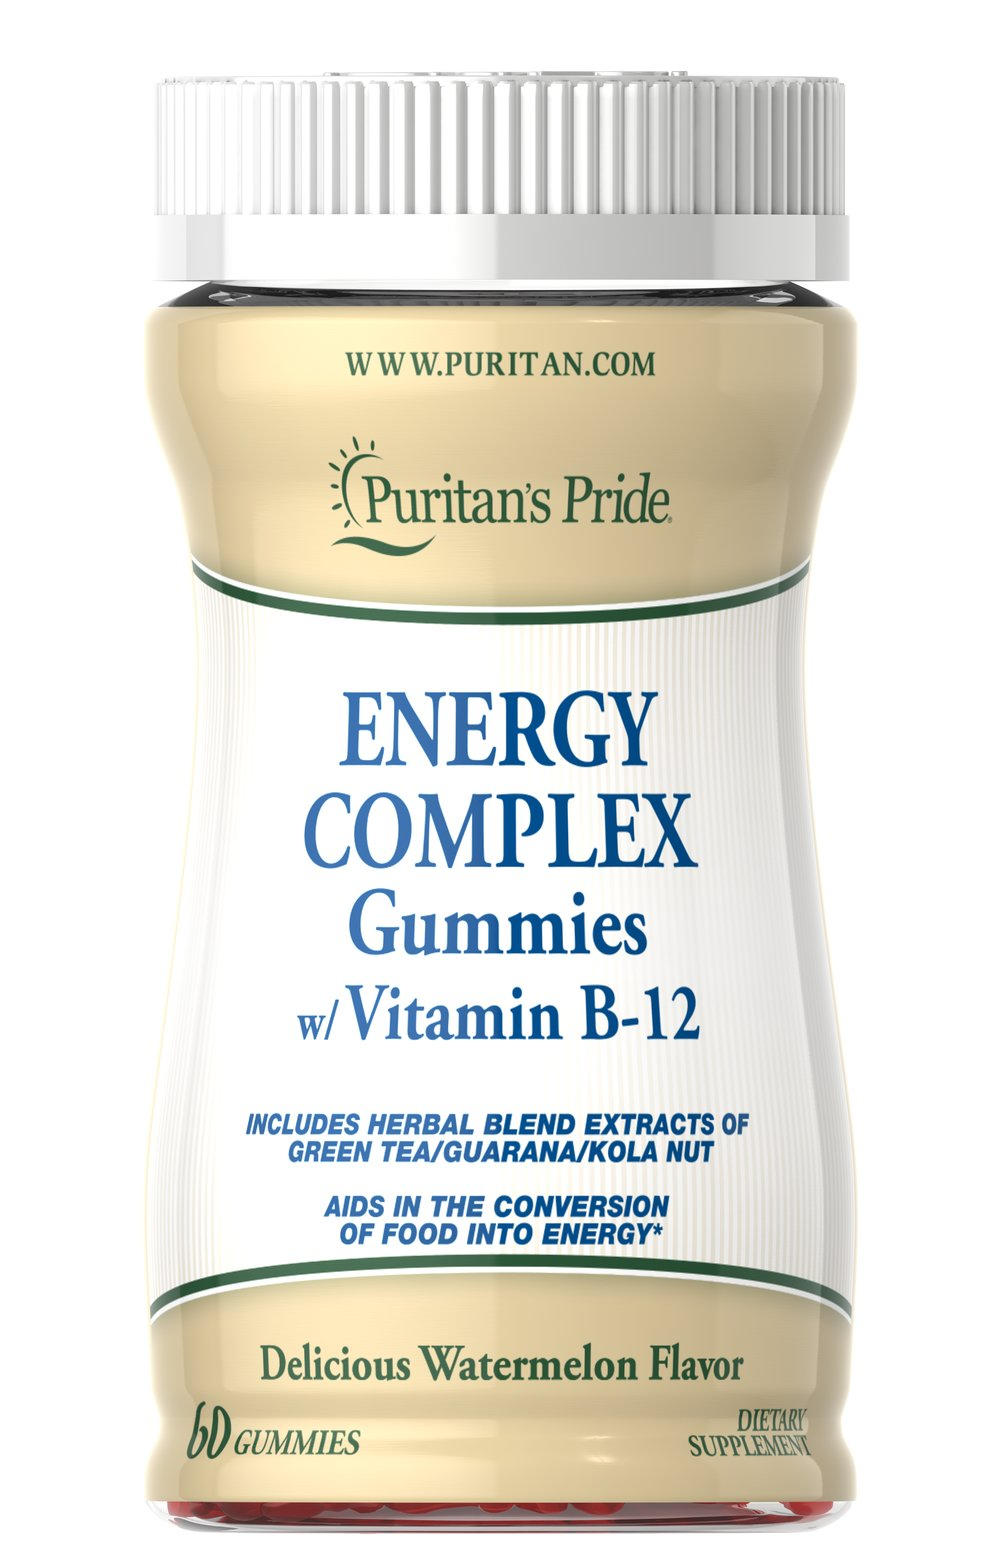 Energy Complex Gummies w/ Vitamin B-12 Thumbnail Alternate Bottle View